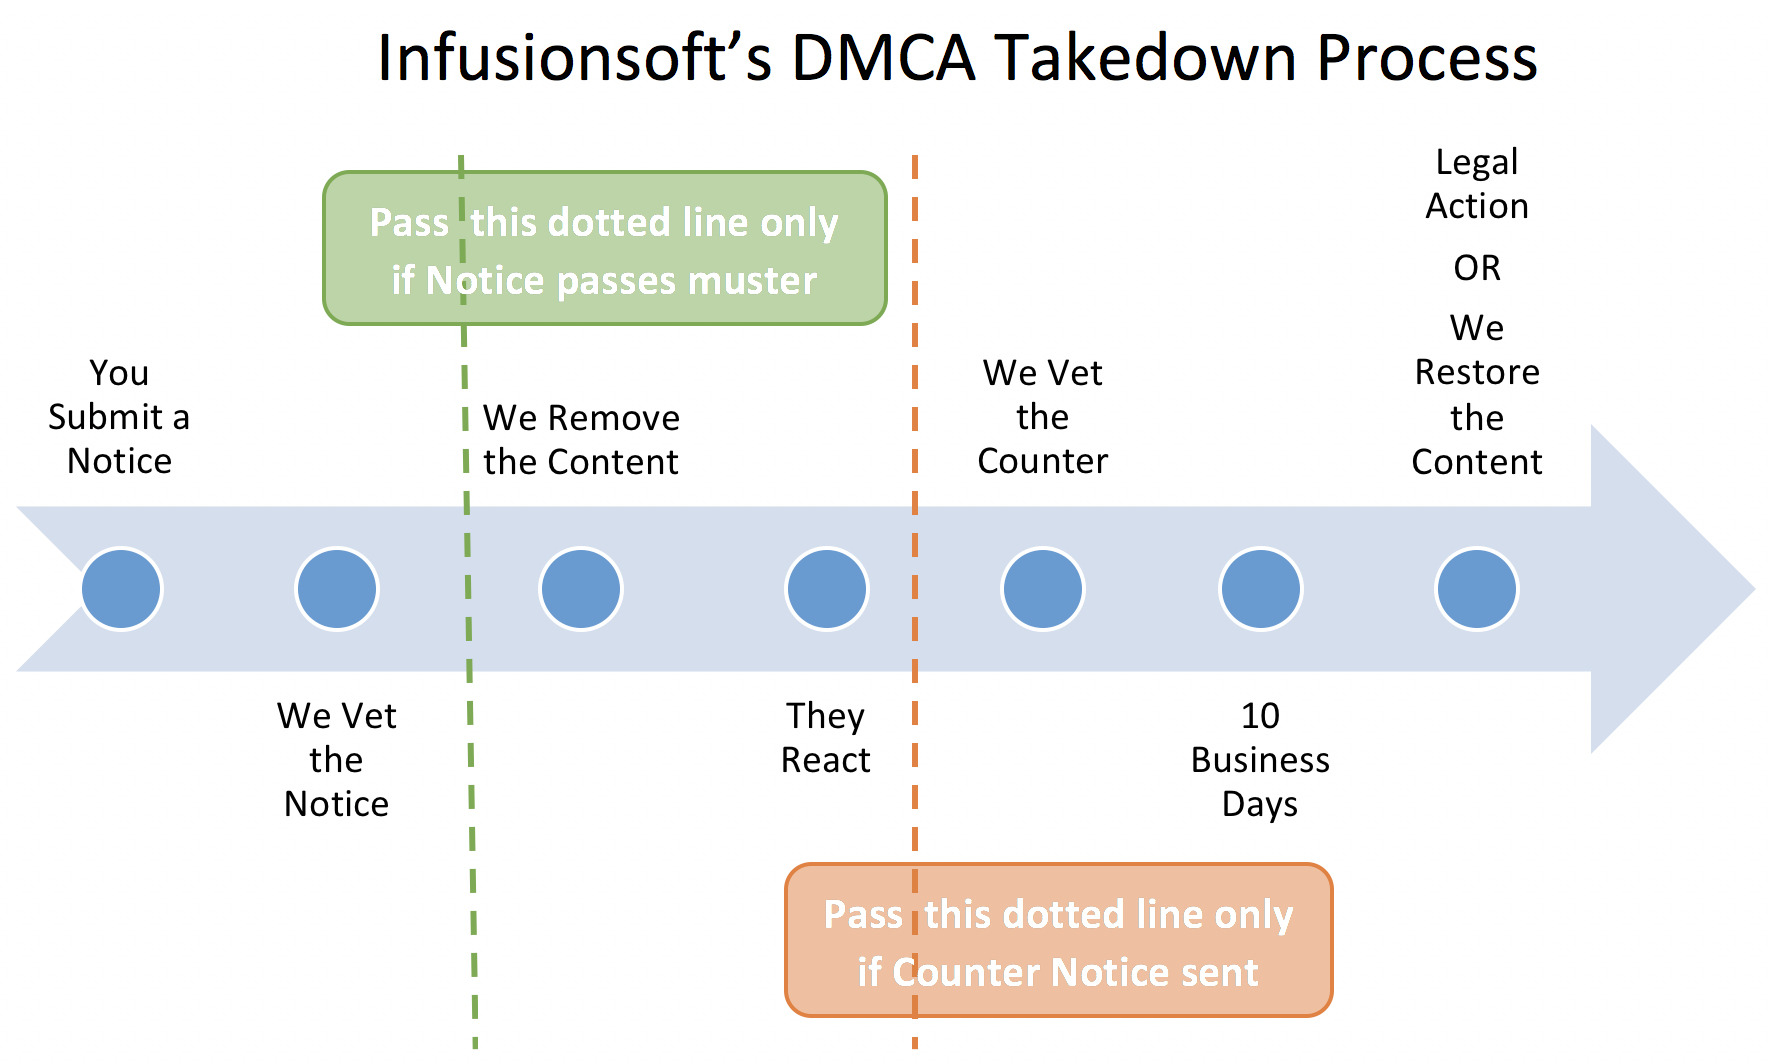 DMCA Guidelines graphic